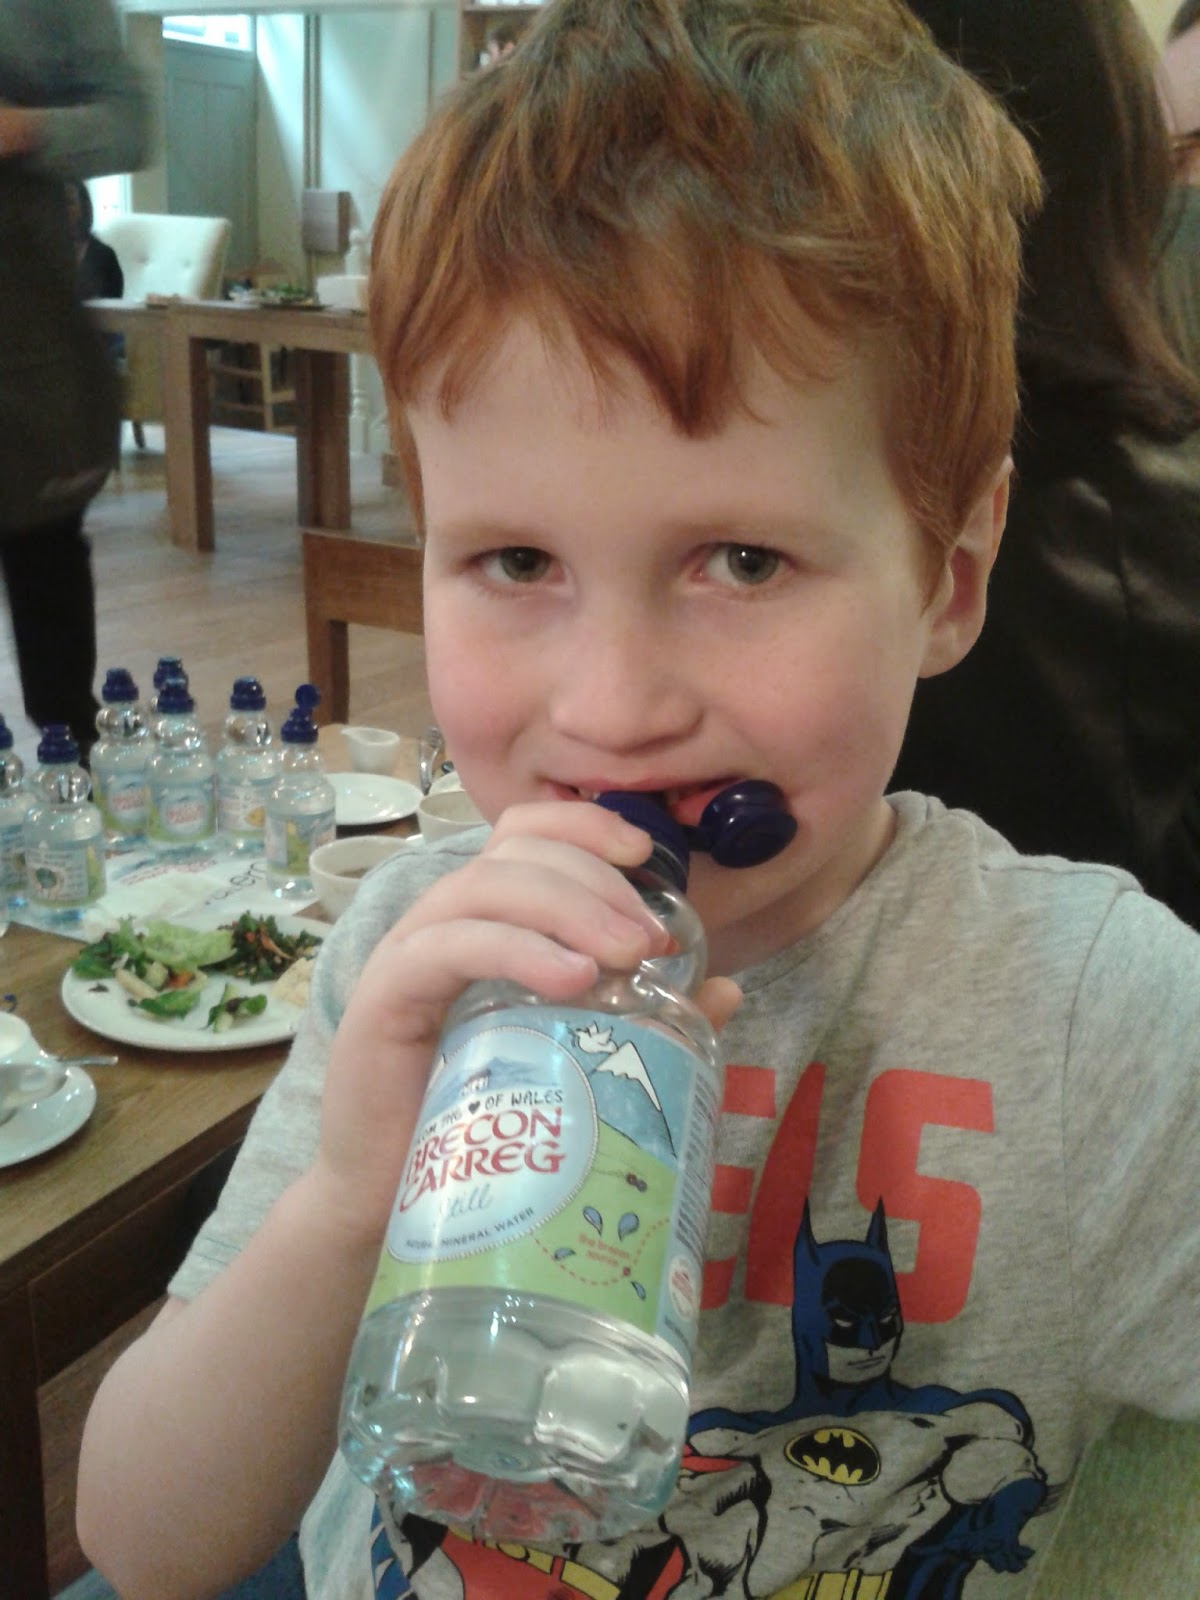 Ieuan Hobbis drinking Brecon Carreg water - motherdistracted.co.uk